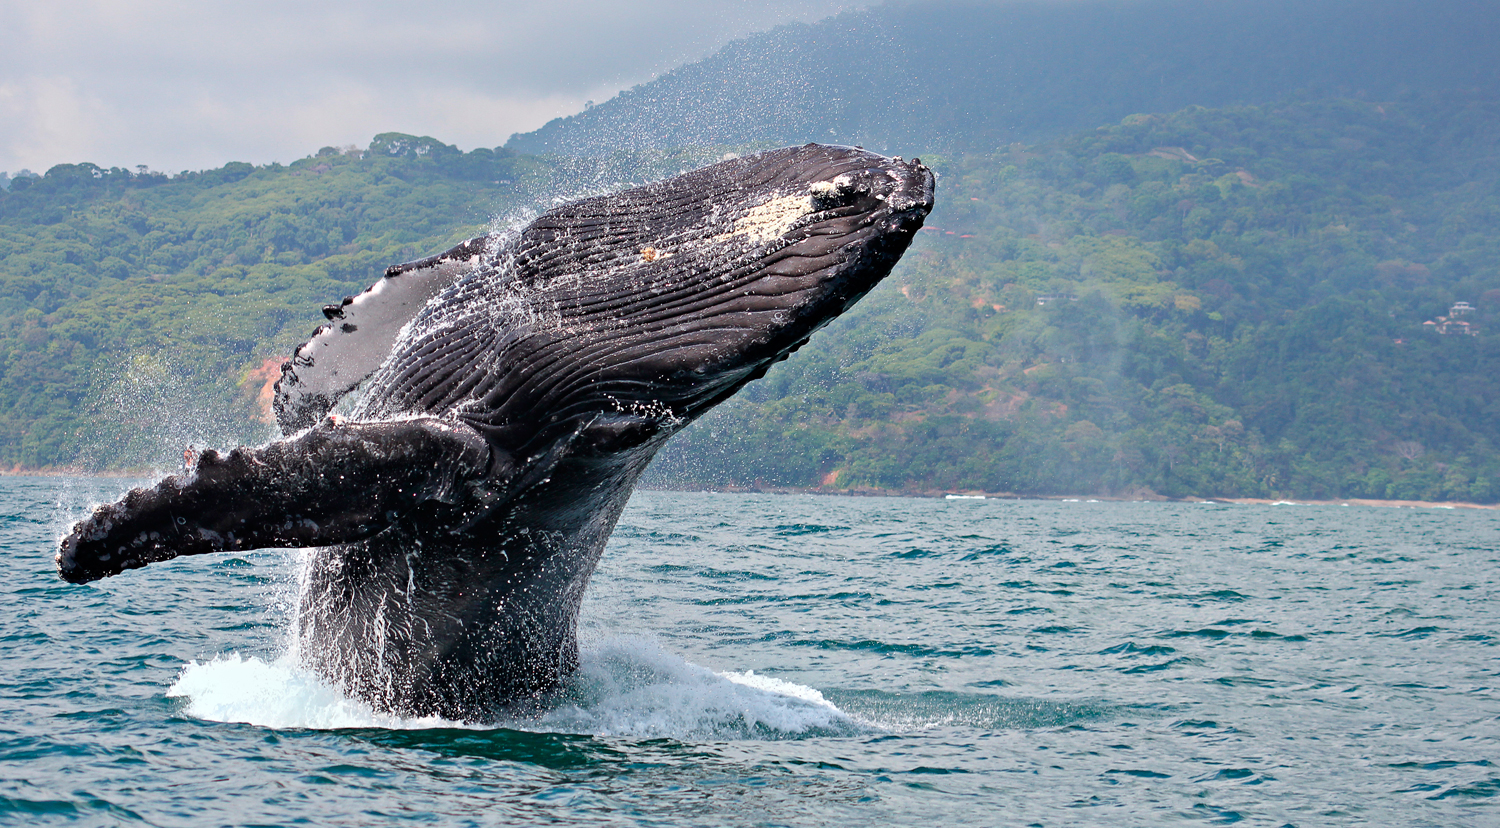 Annual Whale Watching Festival, Dolphins, Turtles and More in Ballena National Marine Park